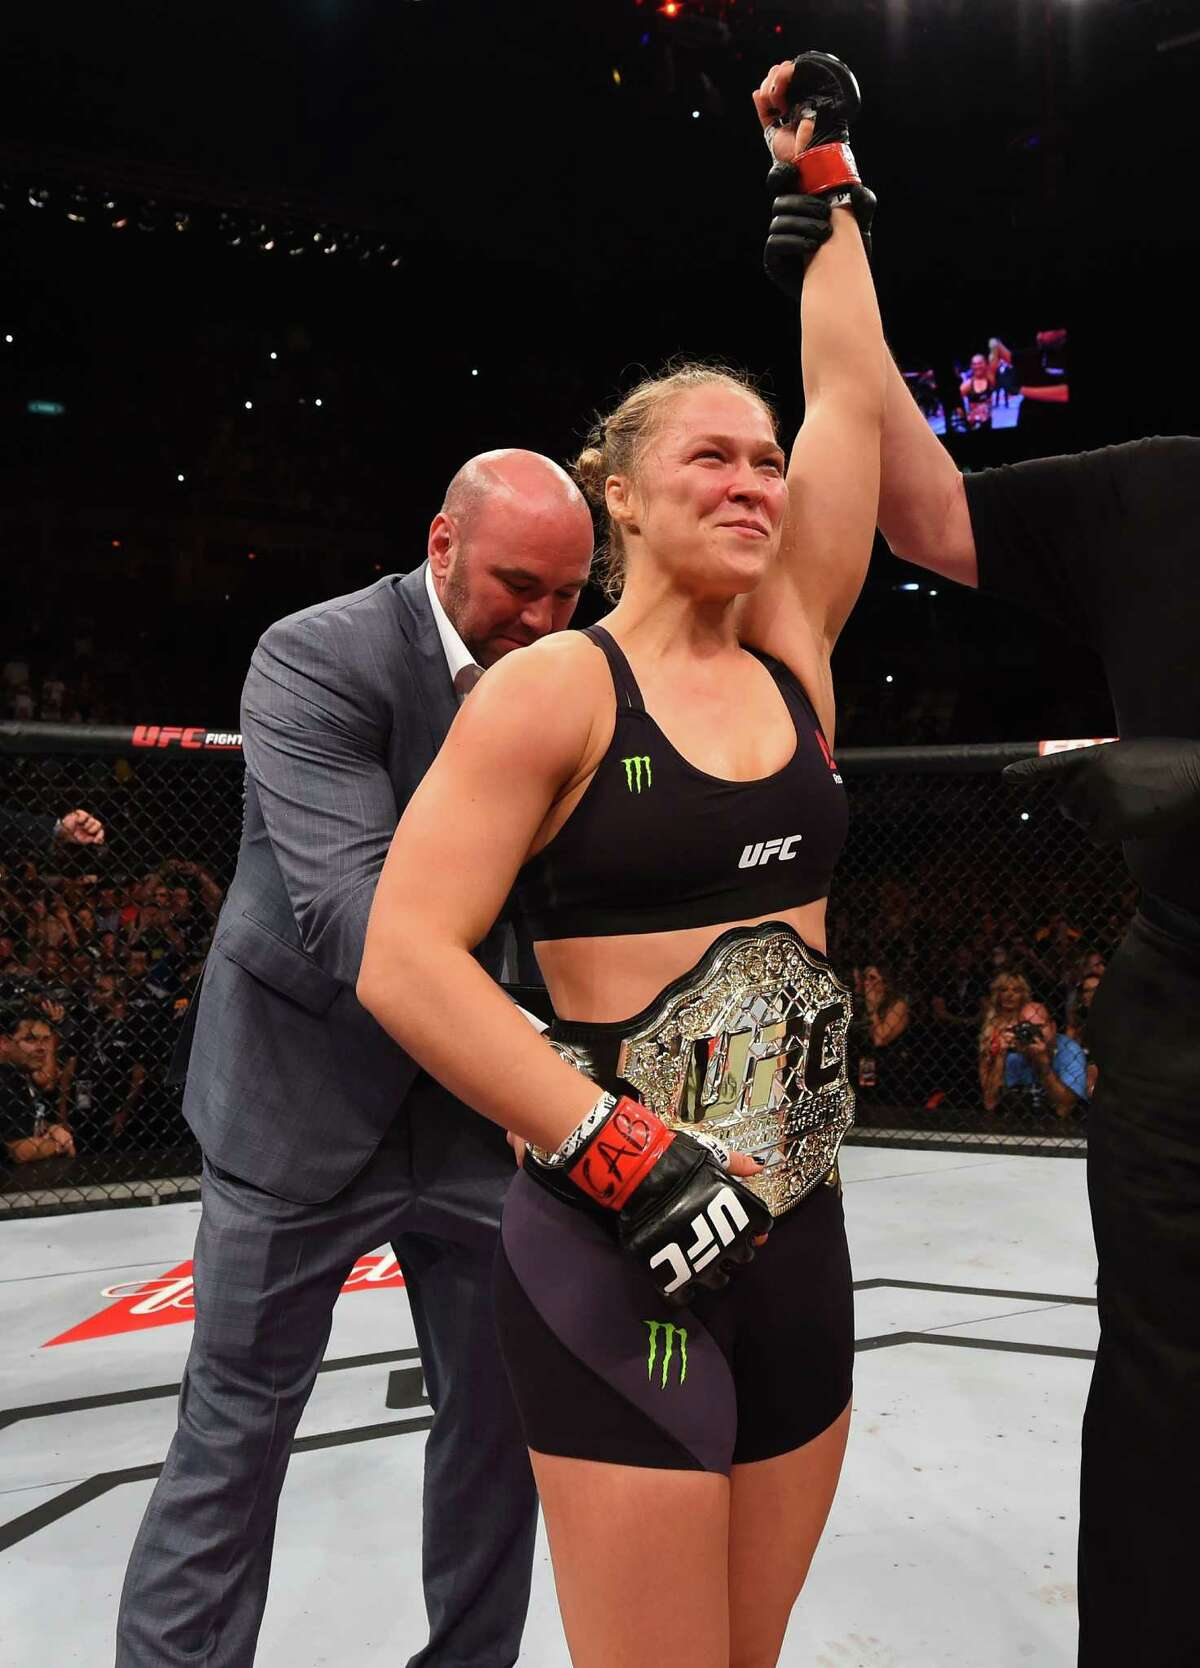 RIO DE JANEIRO, BRAZIL - AUGUST 01: Ronda Rousey of the United States celebrates her knock out victory over Bethe Correia of Brazil in the first round in their UFC women's bantamweight championship bout during the UFC 190 event inside HSBC Arena on August 1, 2015 in Rio de Janeiro, Brazil.